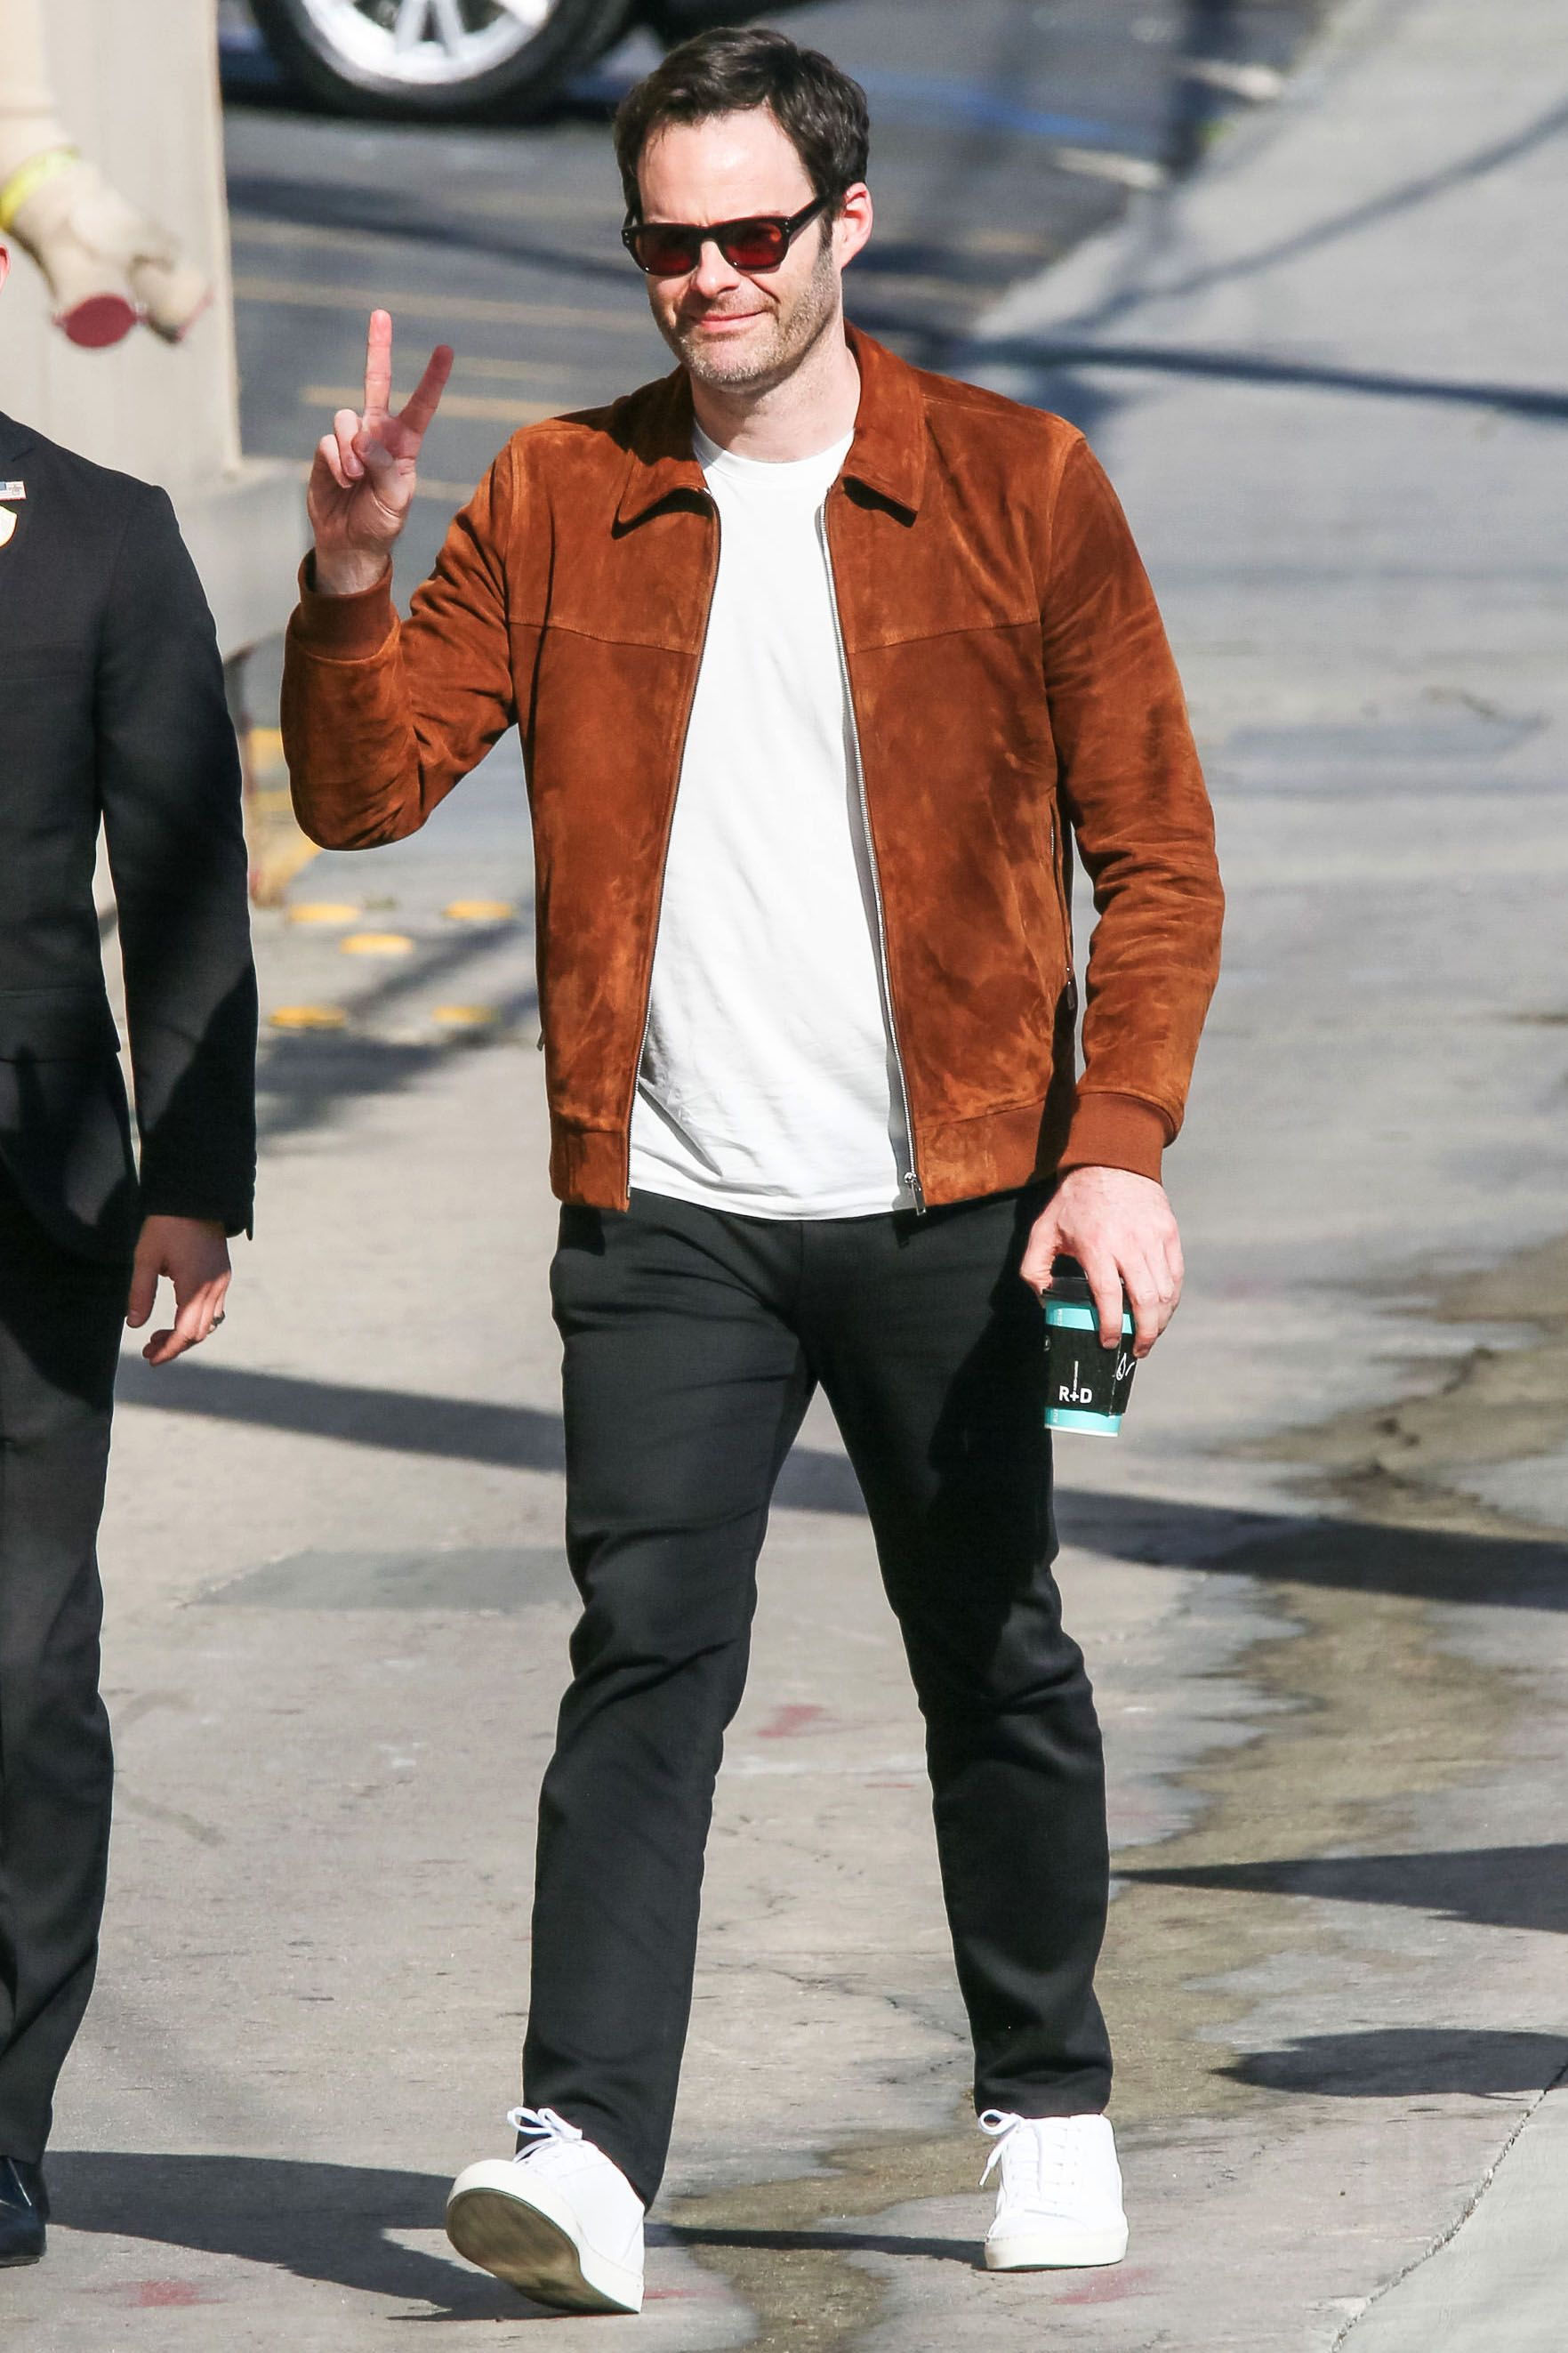 Bill Hader Suede jackets, too! There's a limited amount of time where your light jacket is actually a visible part of your outfit, so make the moment last.